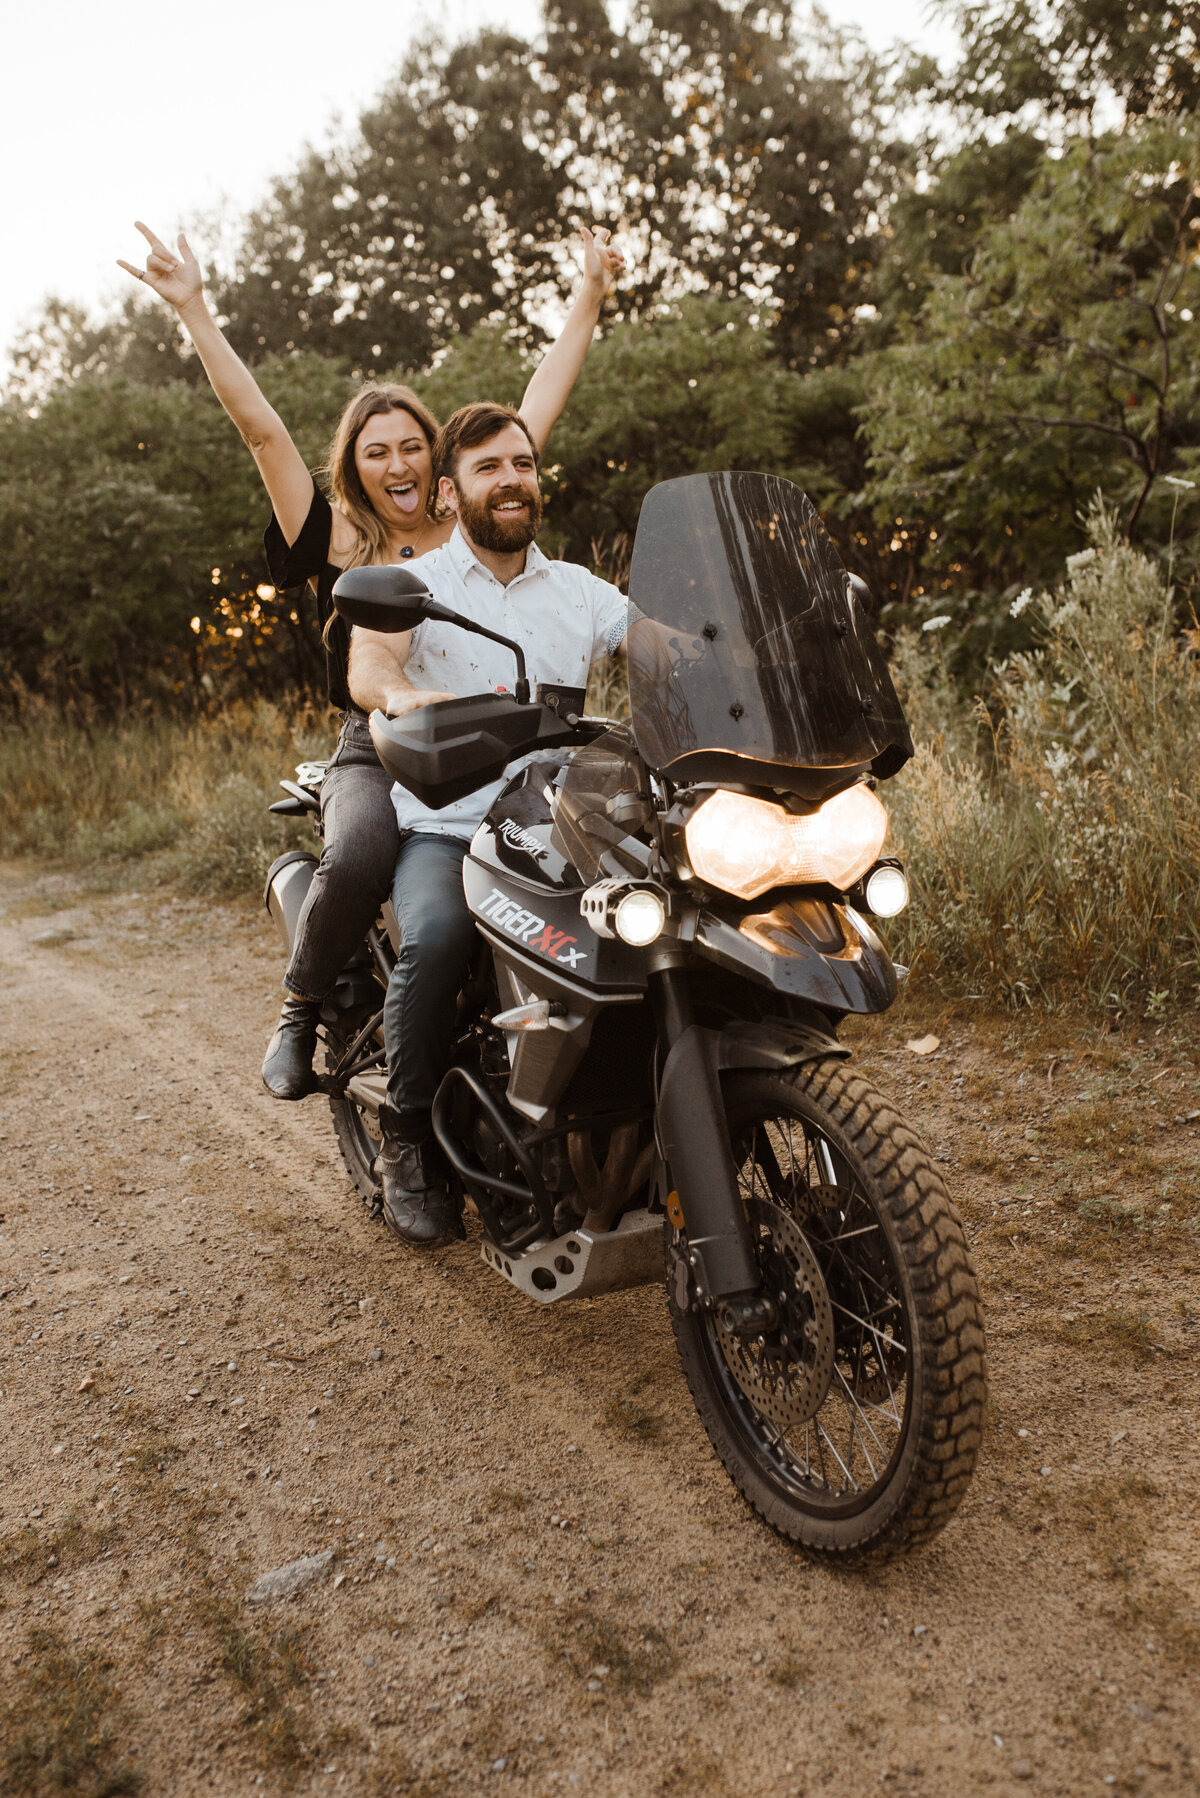 toronto-outdoor-fun-bohemian-motorcycle-engagement-couples-shoot-photography-15